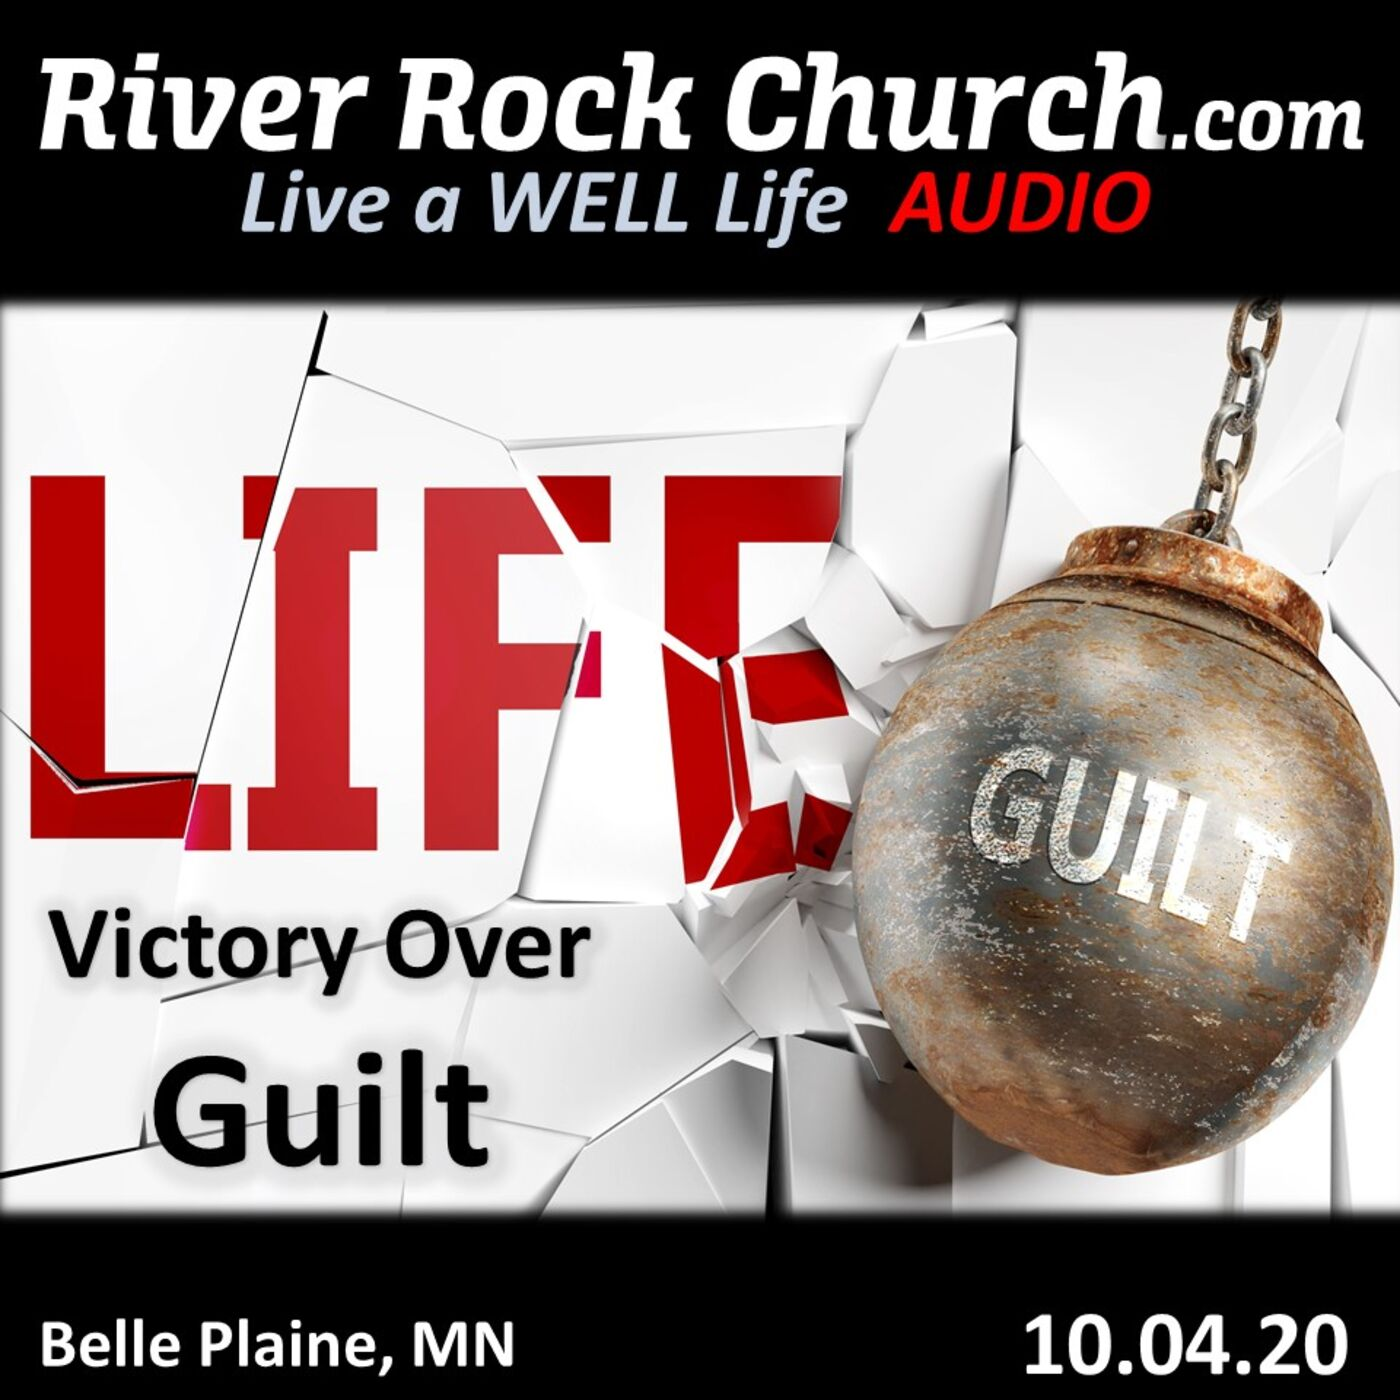 Victory over Guilt